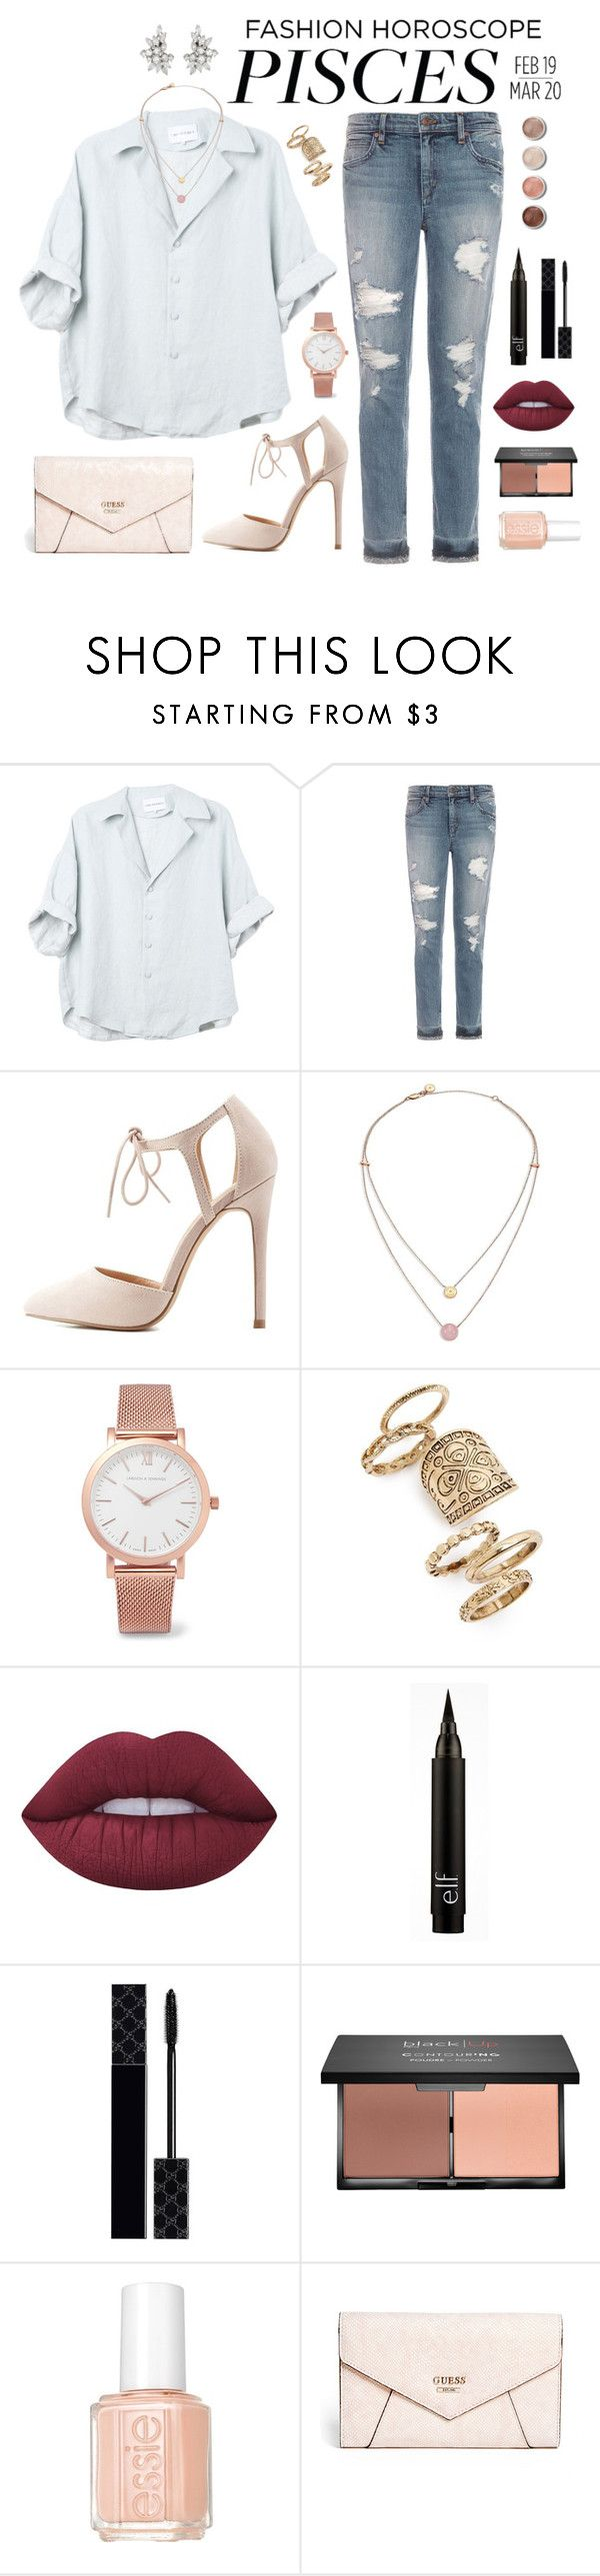 """""""Pisces"""" by kira-mckee on Polyvore featuring Joe's Jeans, Charlotte Russe, Michael Kors, Larsson & Jennings, Topshop, Terre Mère, Lime Crime, Gucci, Essie and GUESS"""